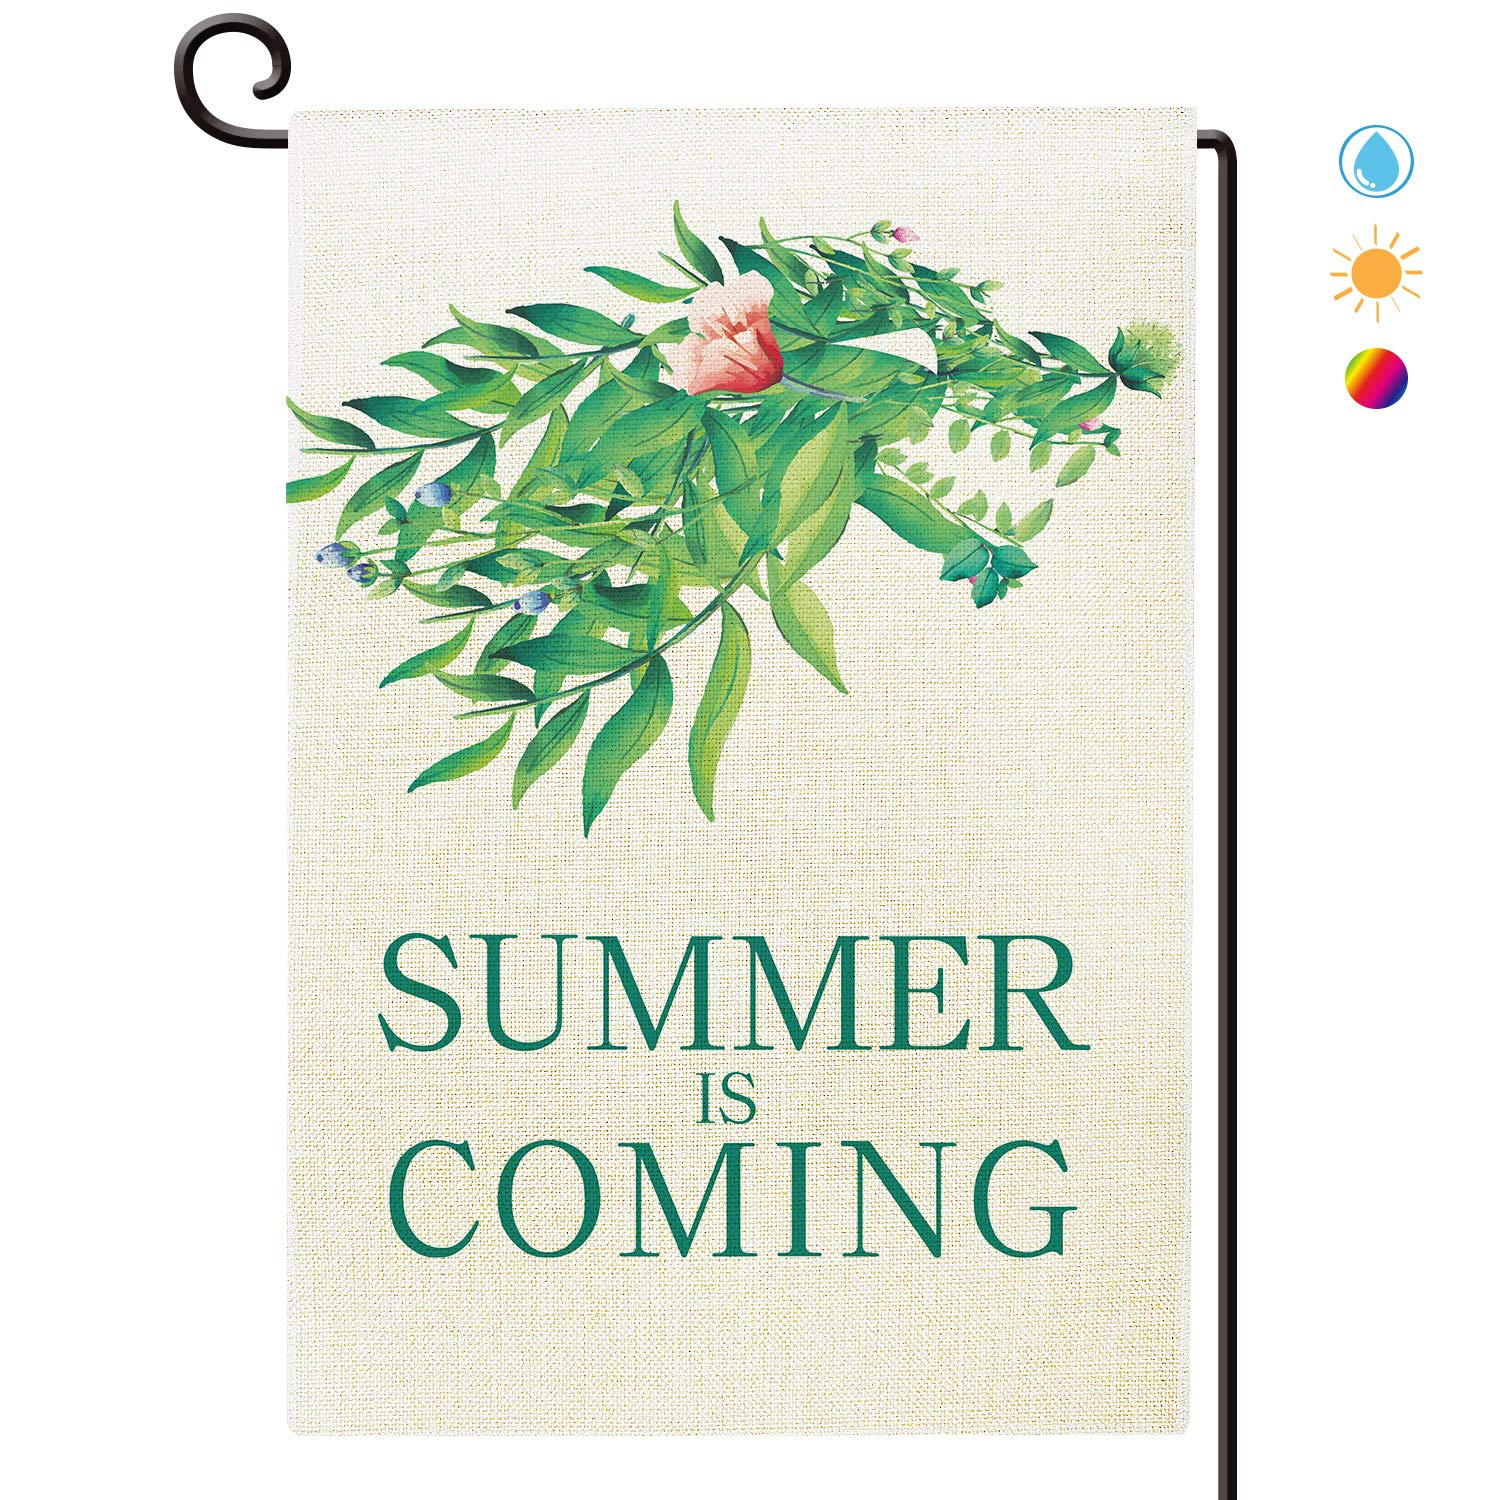 Summer is Coming Garden Flag Waterproof Double Sided Yard Outdoor Decorative 12 x 18 Inch